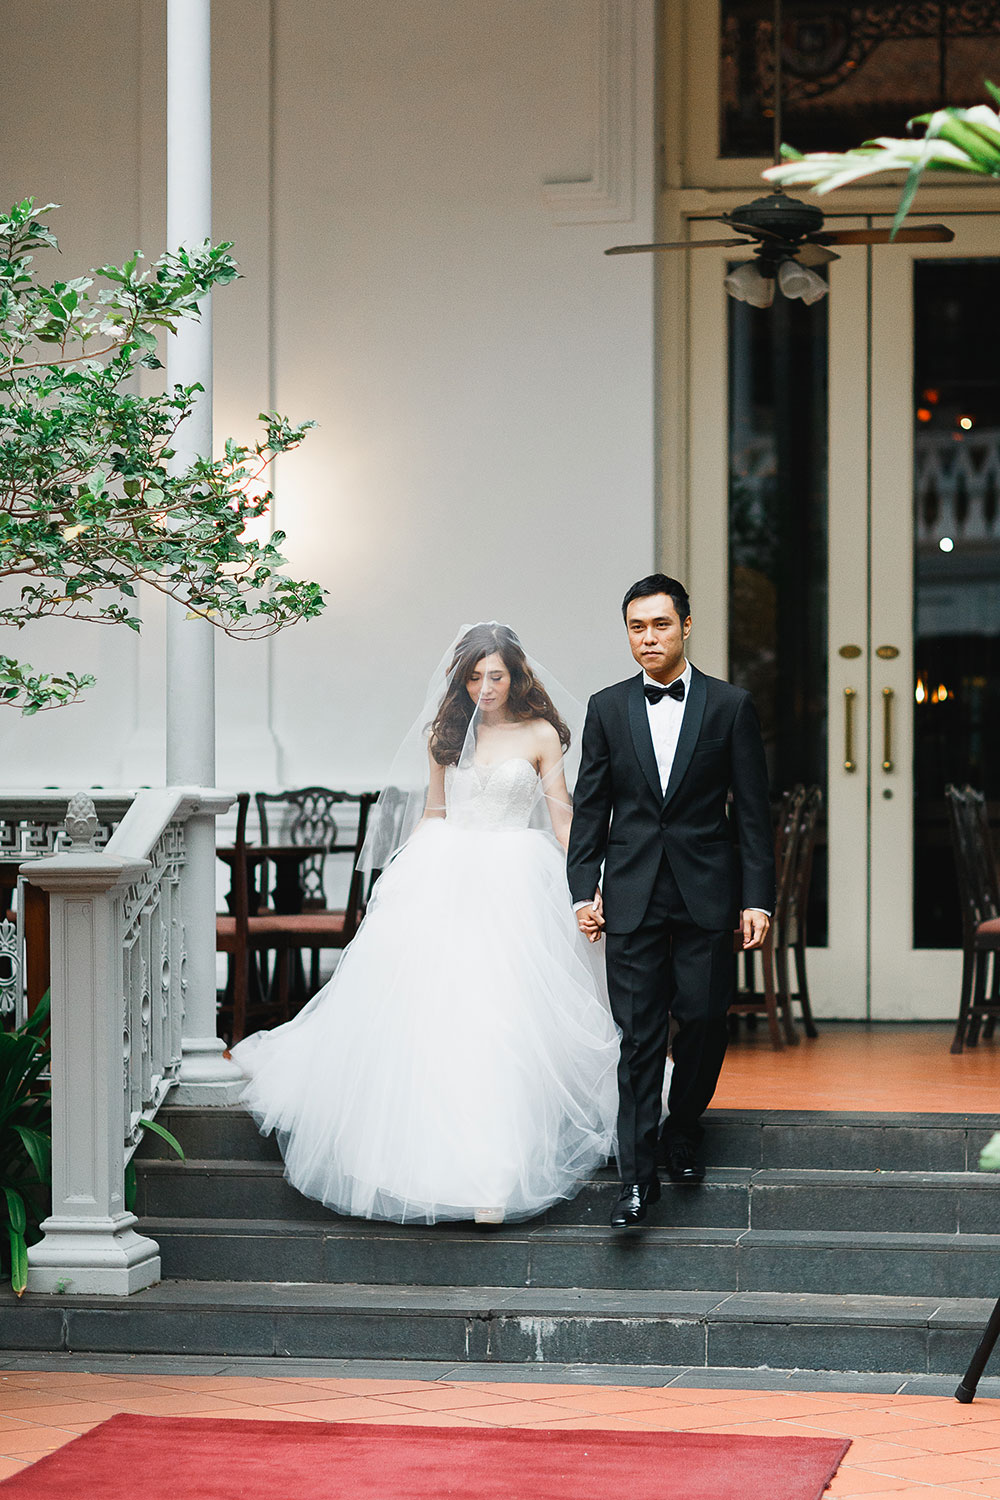 Singaore-Raffles-Hotel-Wedding-ceremony-entrance